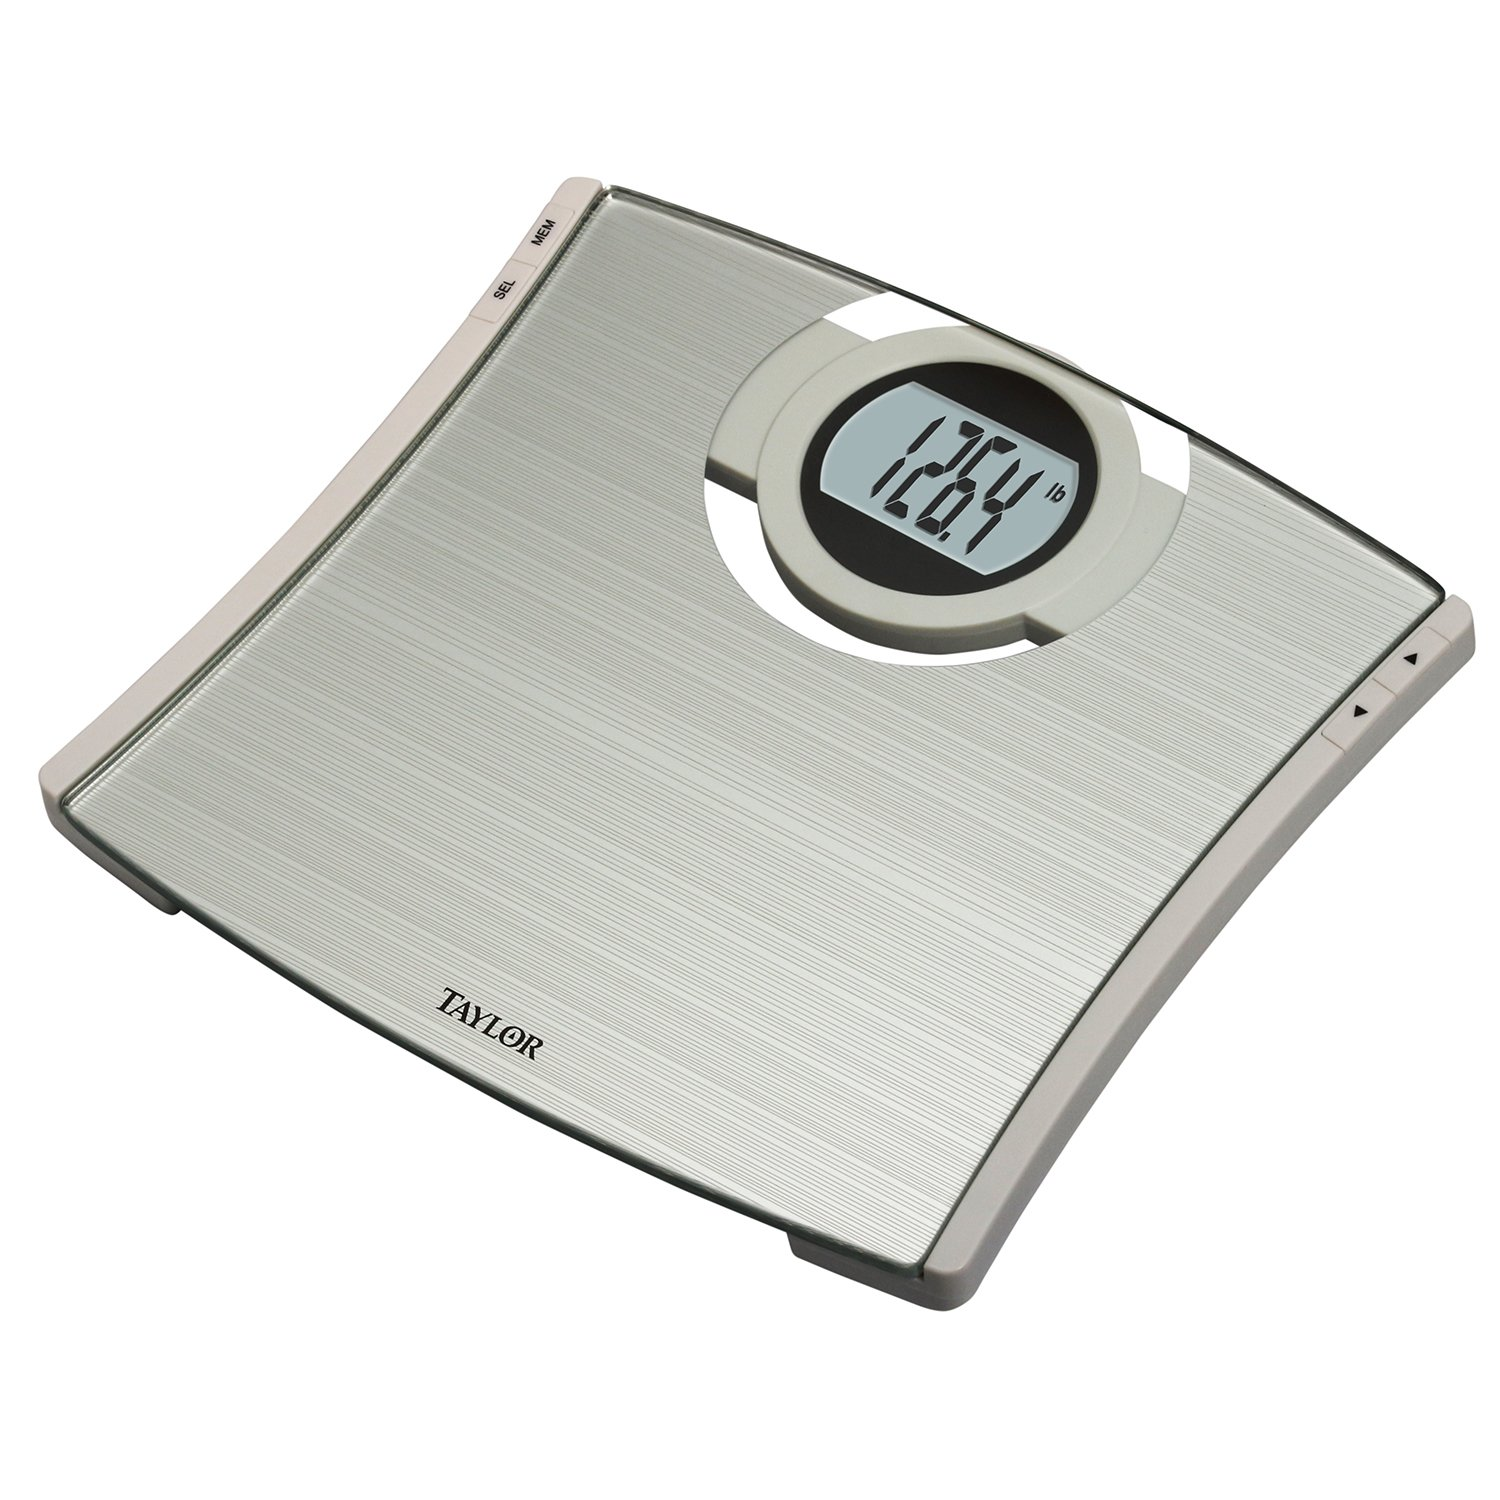 fancy pocket ideas of inspirational skallo image electronic new scale precision posts download pinterest digital jewelry under latest scales bathroom taylor